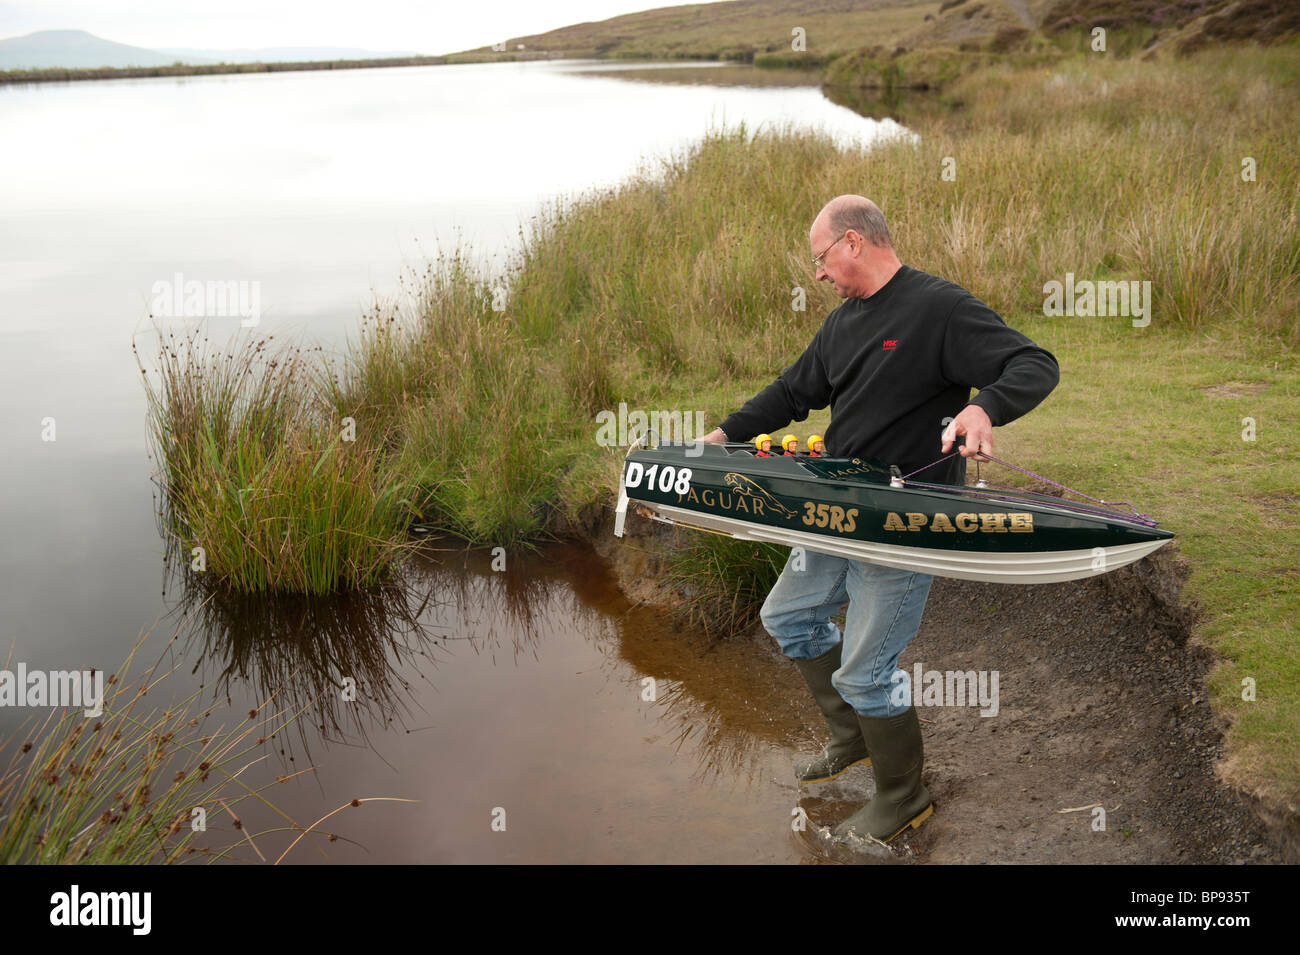 Men racing with radio - controlled model power boats on a pond, Wales UK - Stock Image